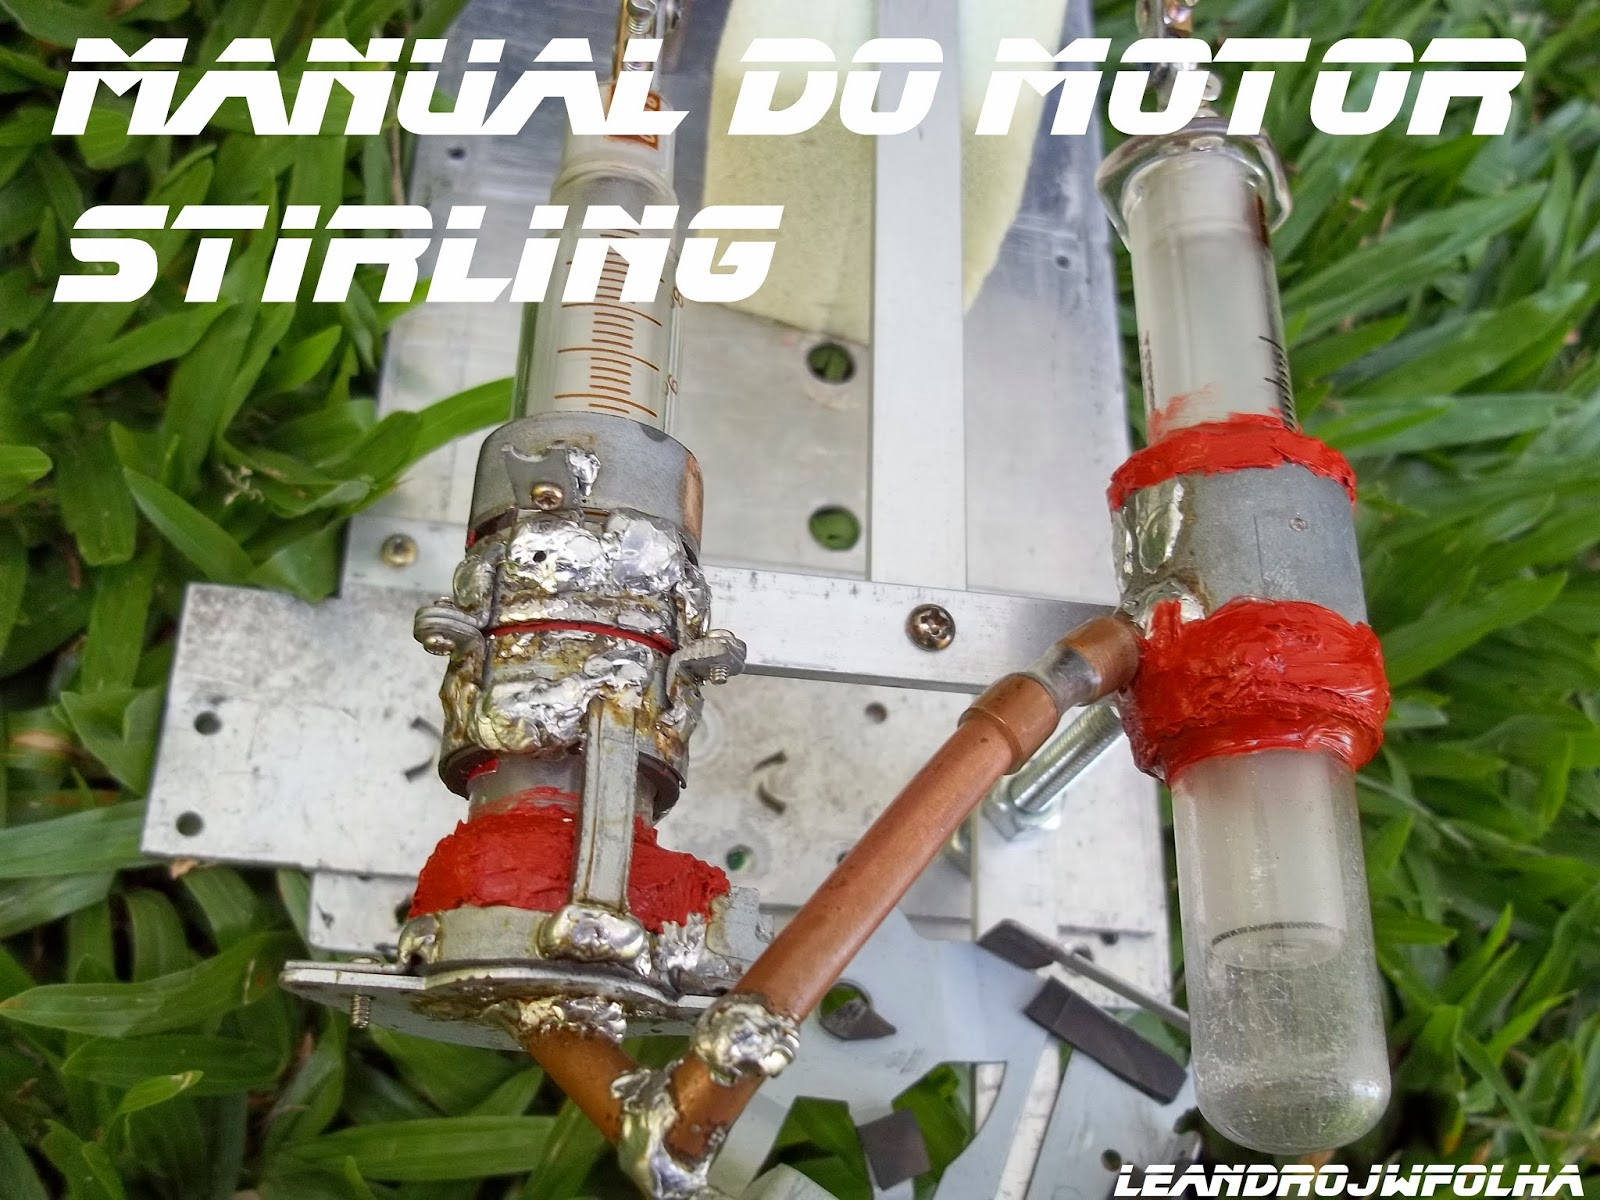 Manual do motor Stirling, imagem do motor Stirling Alfa